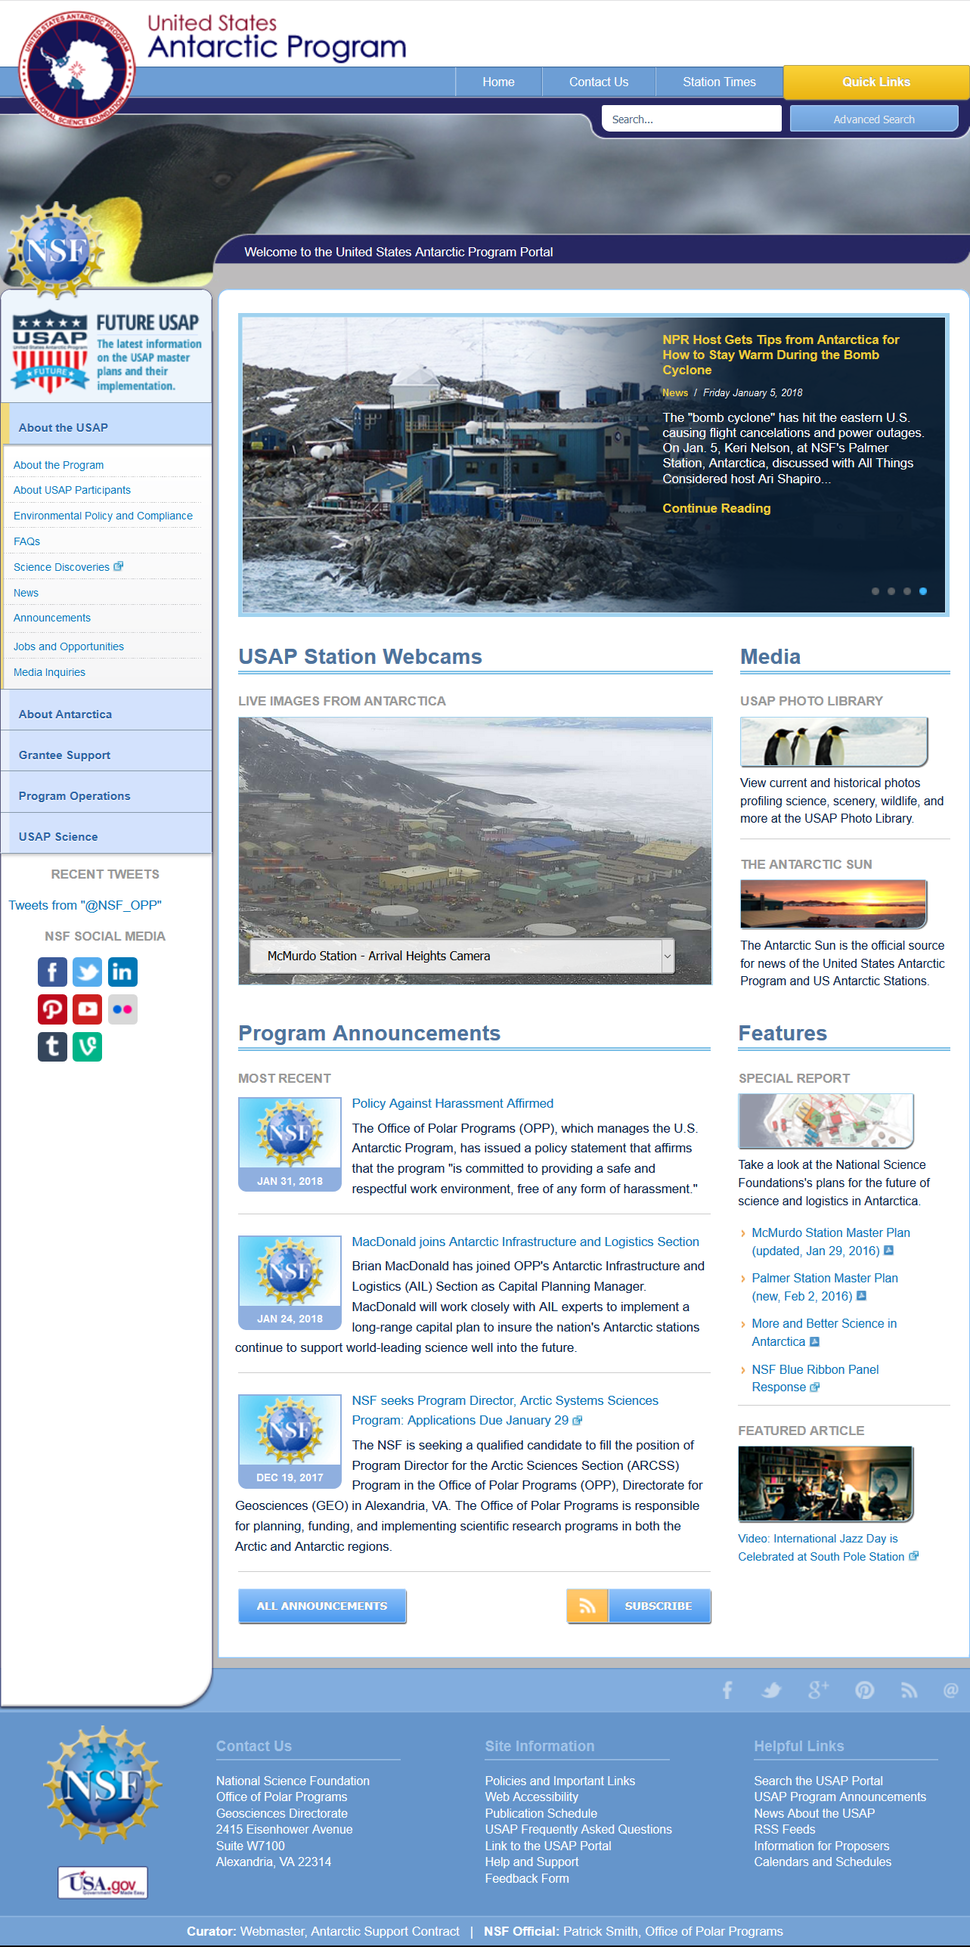 United States Antarctic Program website from 2018 02 22